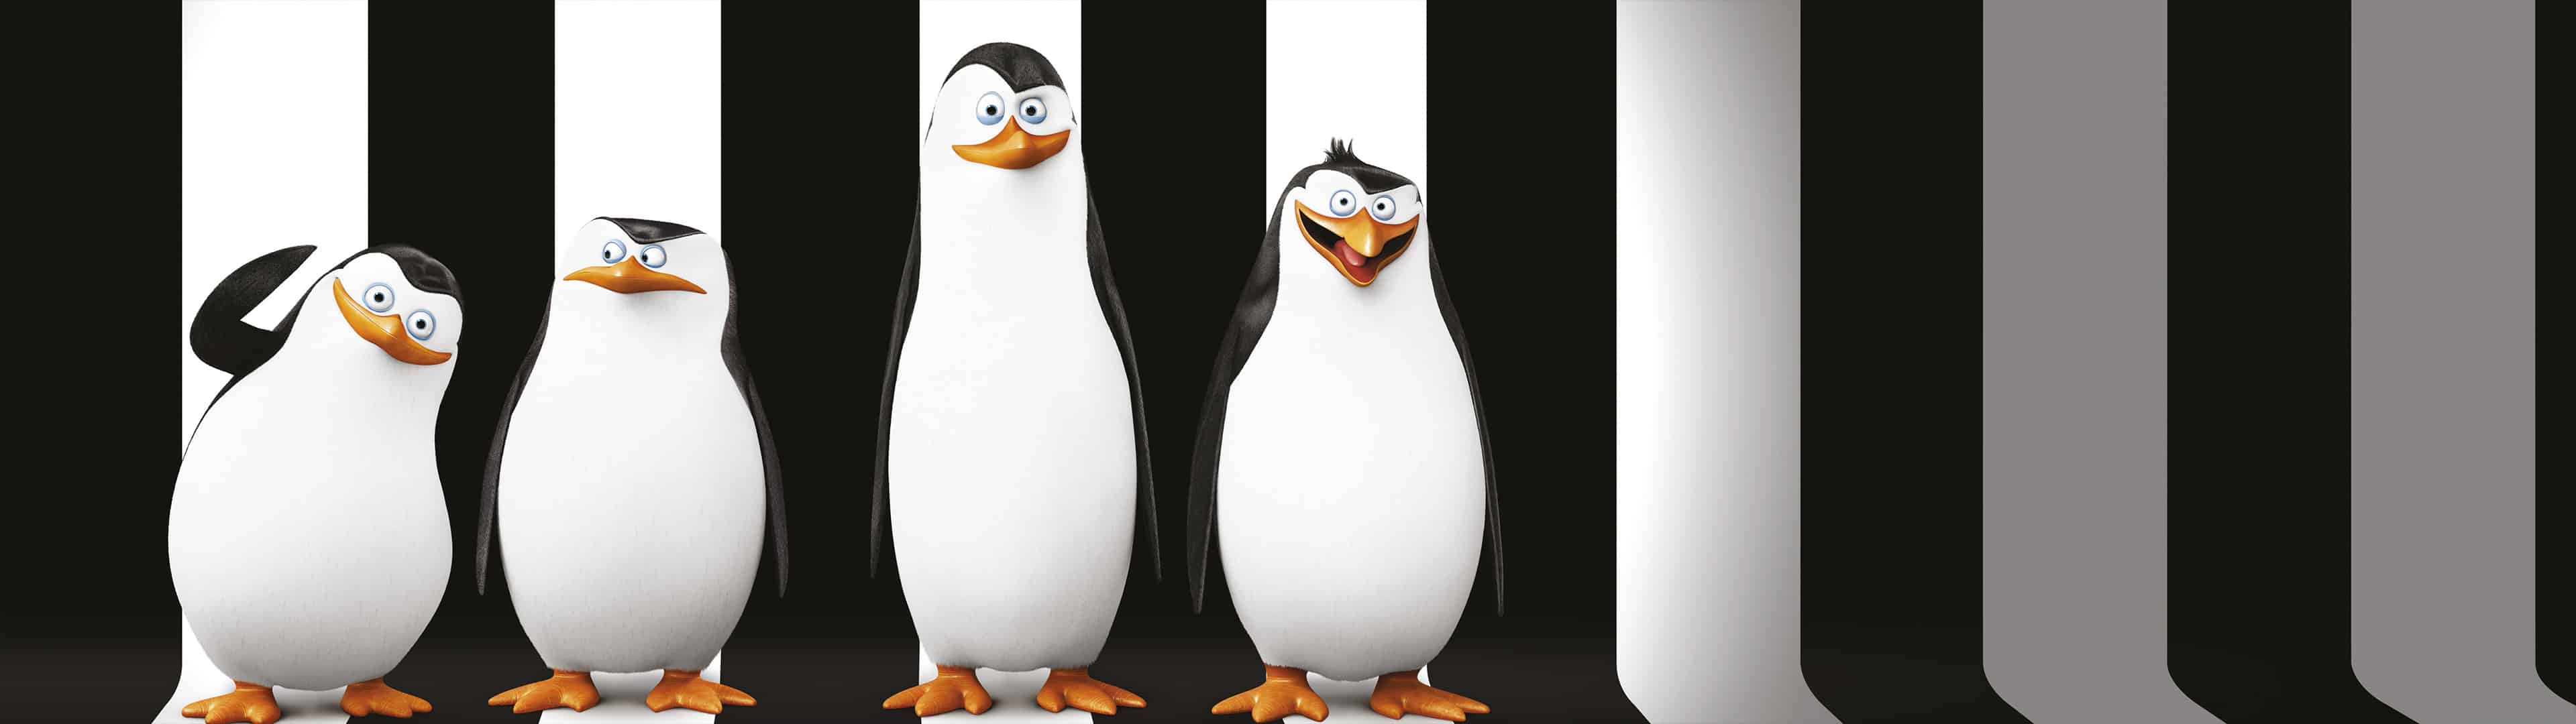 penguins of madagascar dual monitor wallpaper